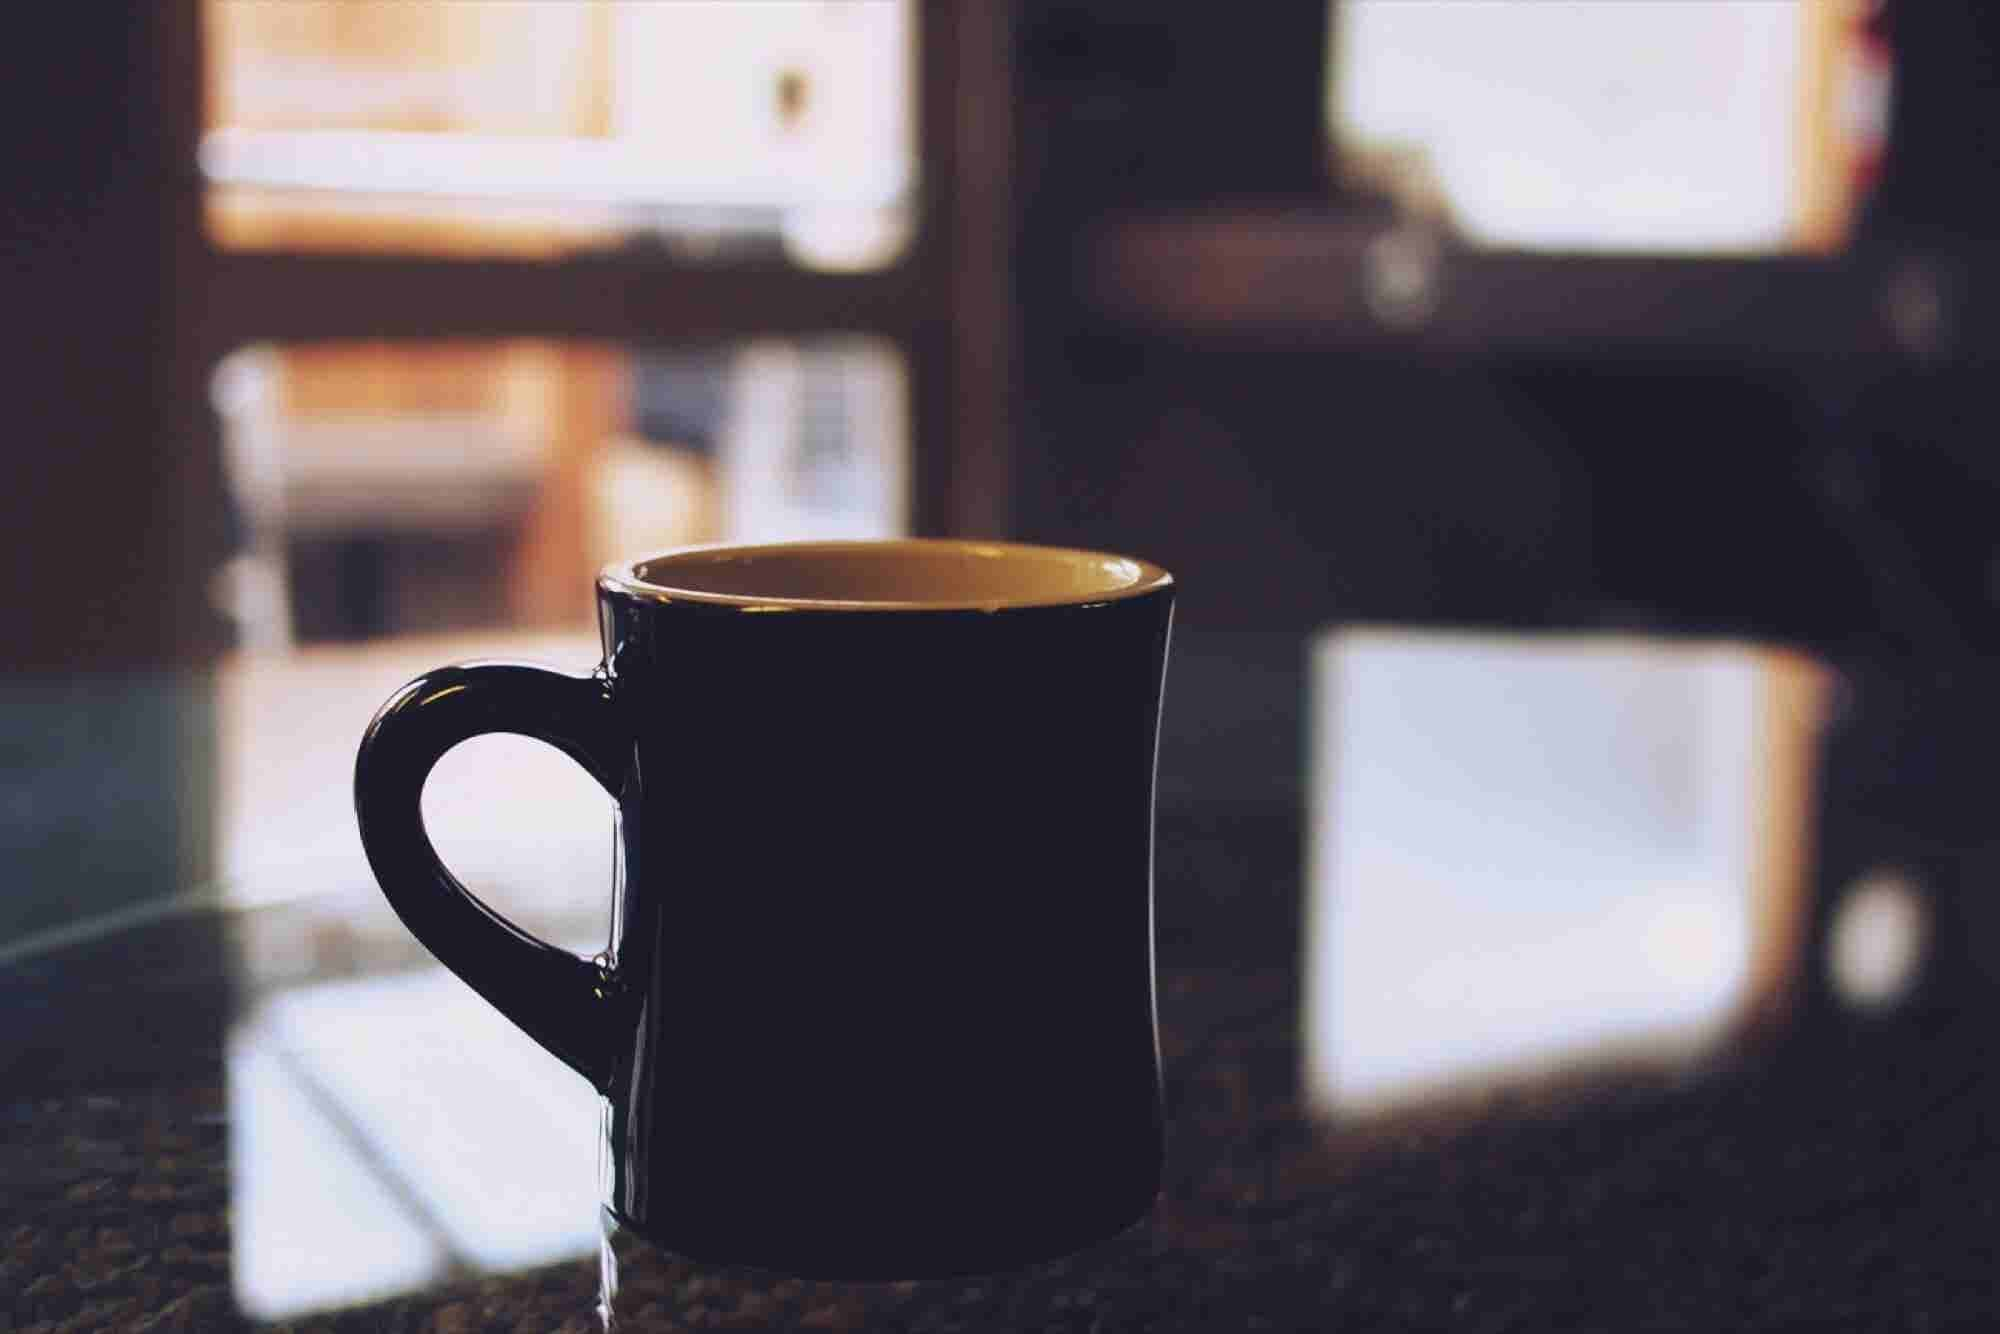 Study: Regularly Drinking Coffee May Reduce Skin Cancer Risk